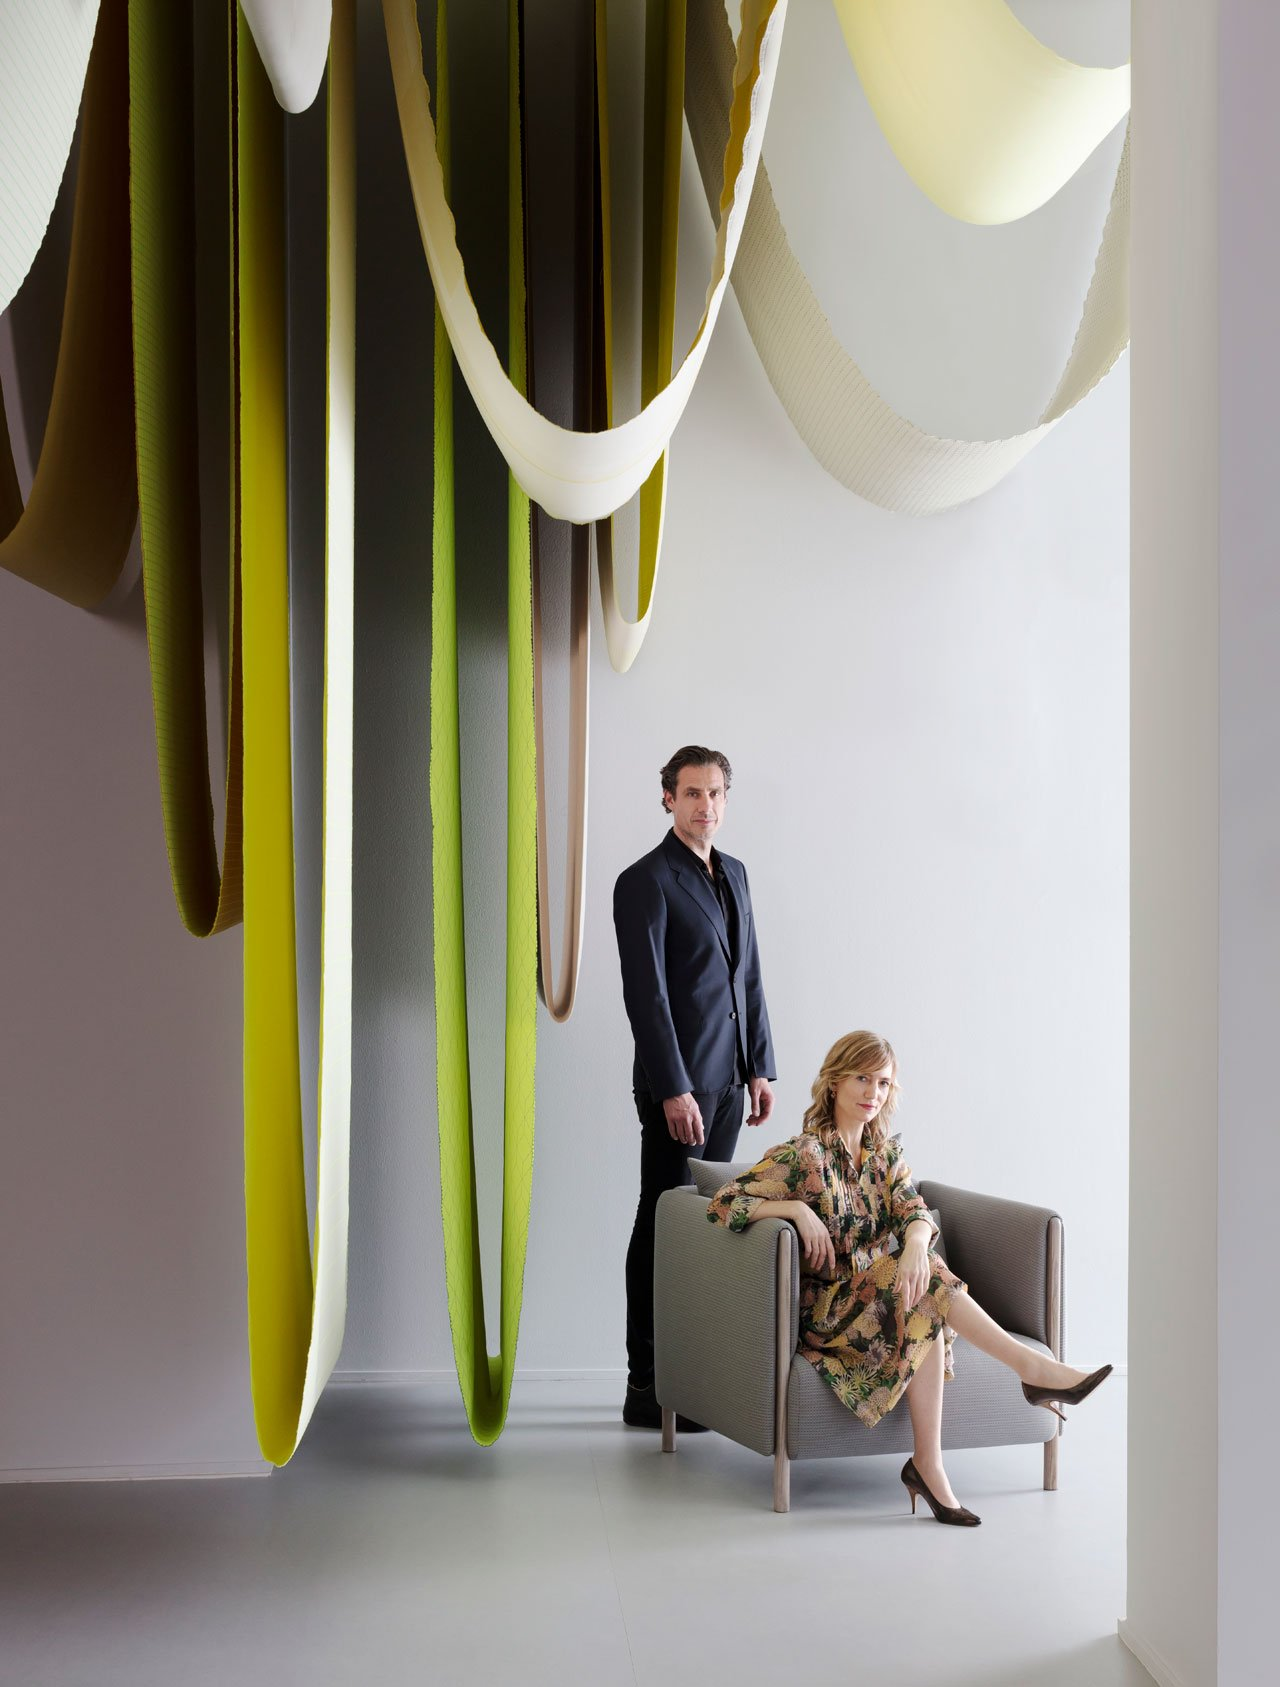 Chromatography exhibit by Stefan Scholten and Carole Baijings of Scholten & Baijings in the Herman Miller featuring Mahatma textiles that were hanging from the ceiling, and beneath them elements of their new ColourForm Sofa Group for Herman Miller.Photo by Ben Anders.